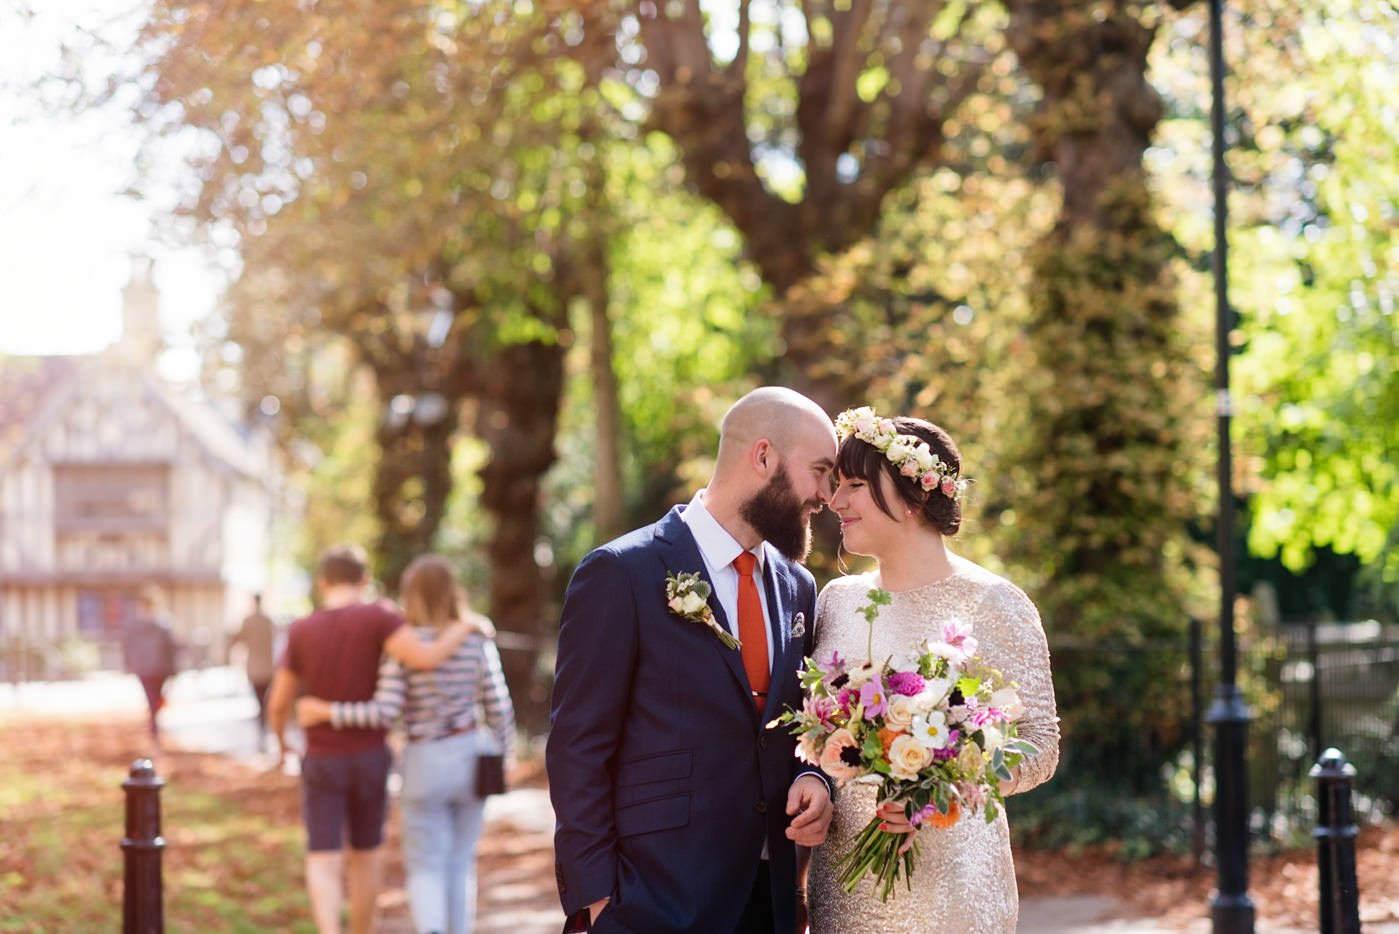 How to overcome camera shyness wedding pictures